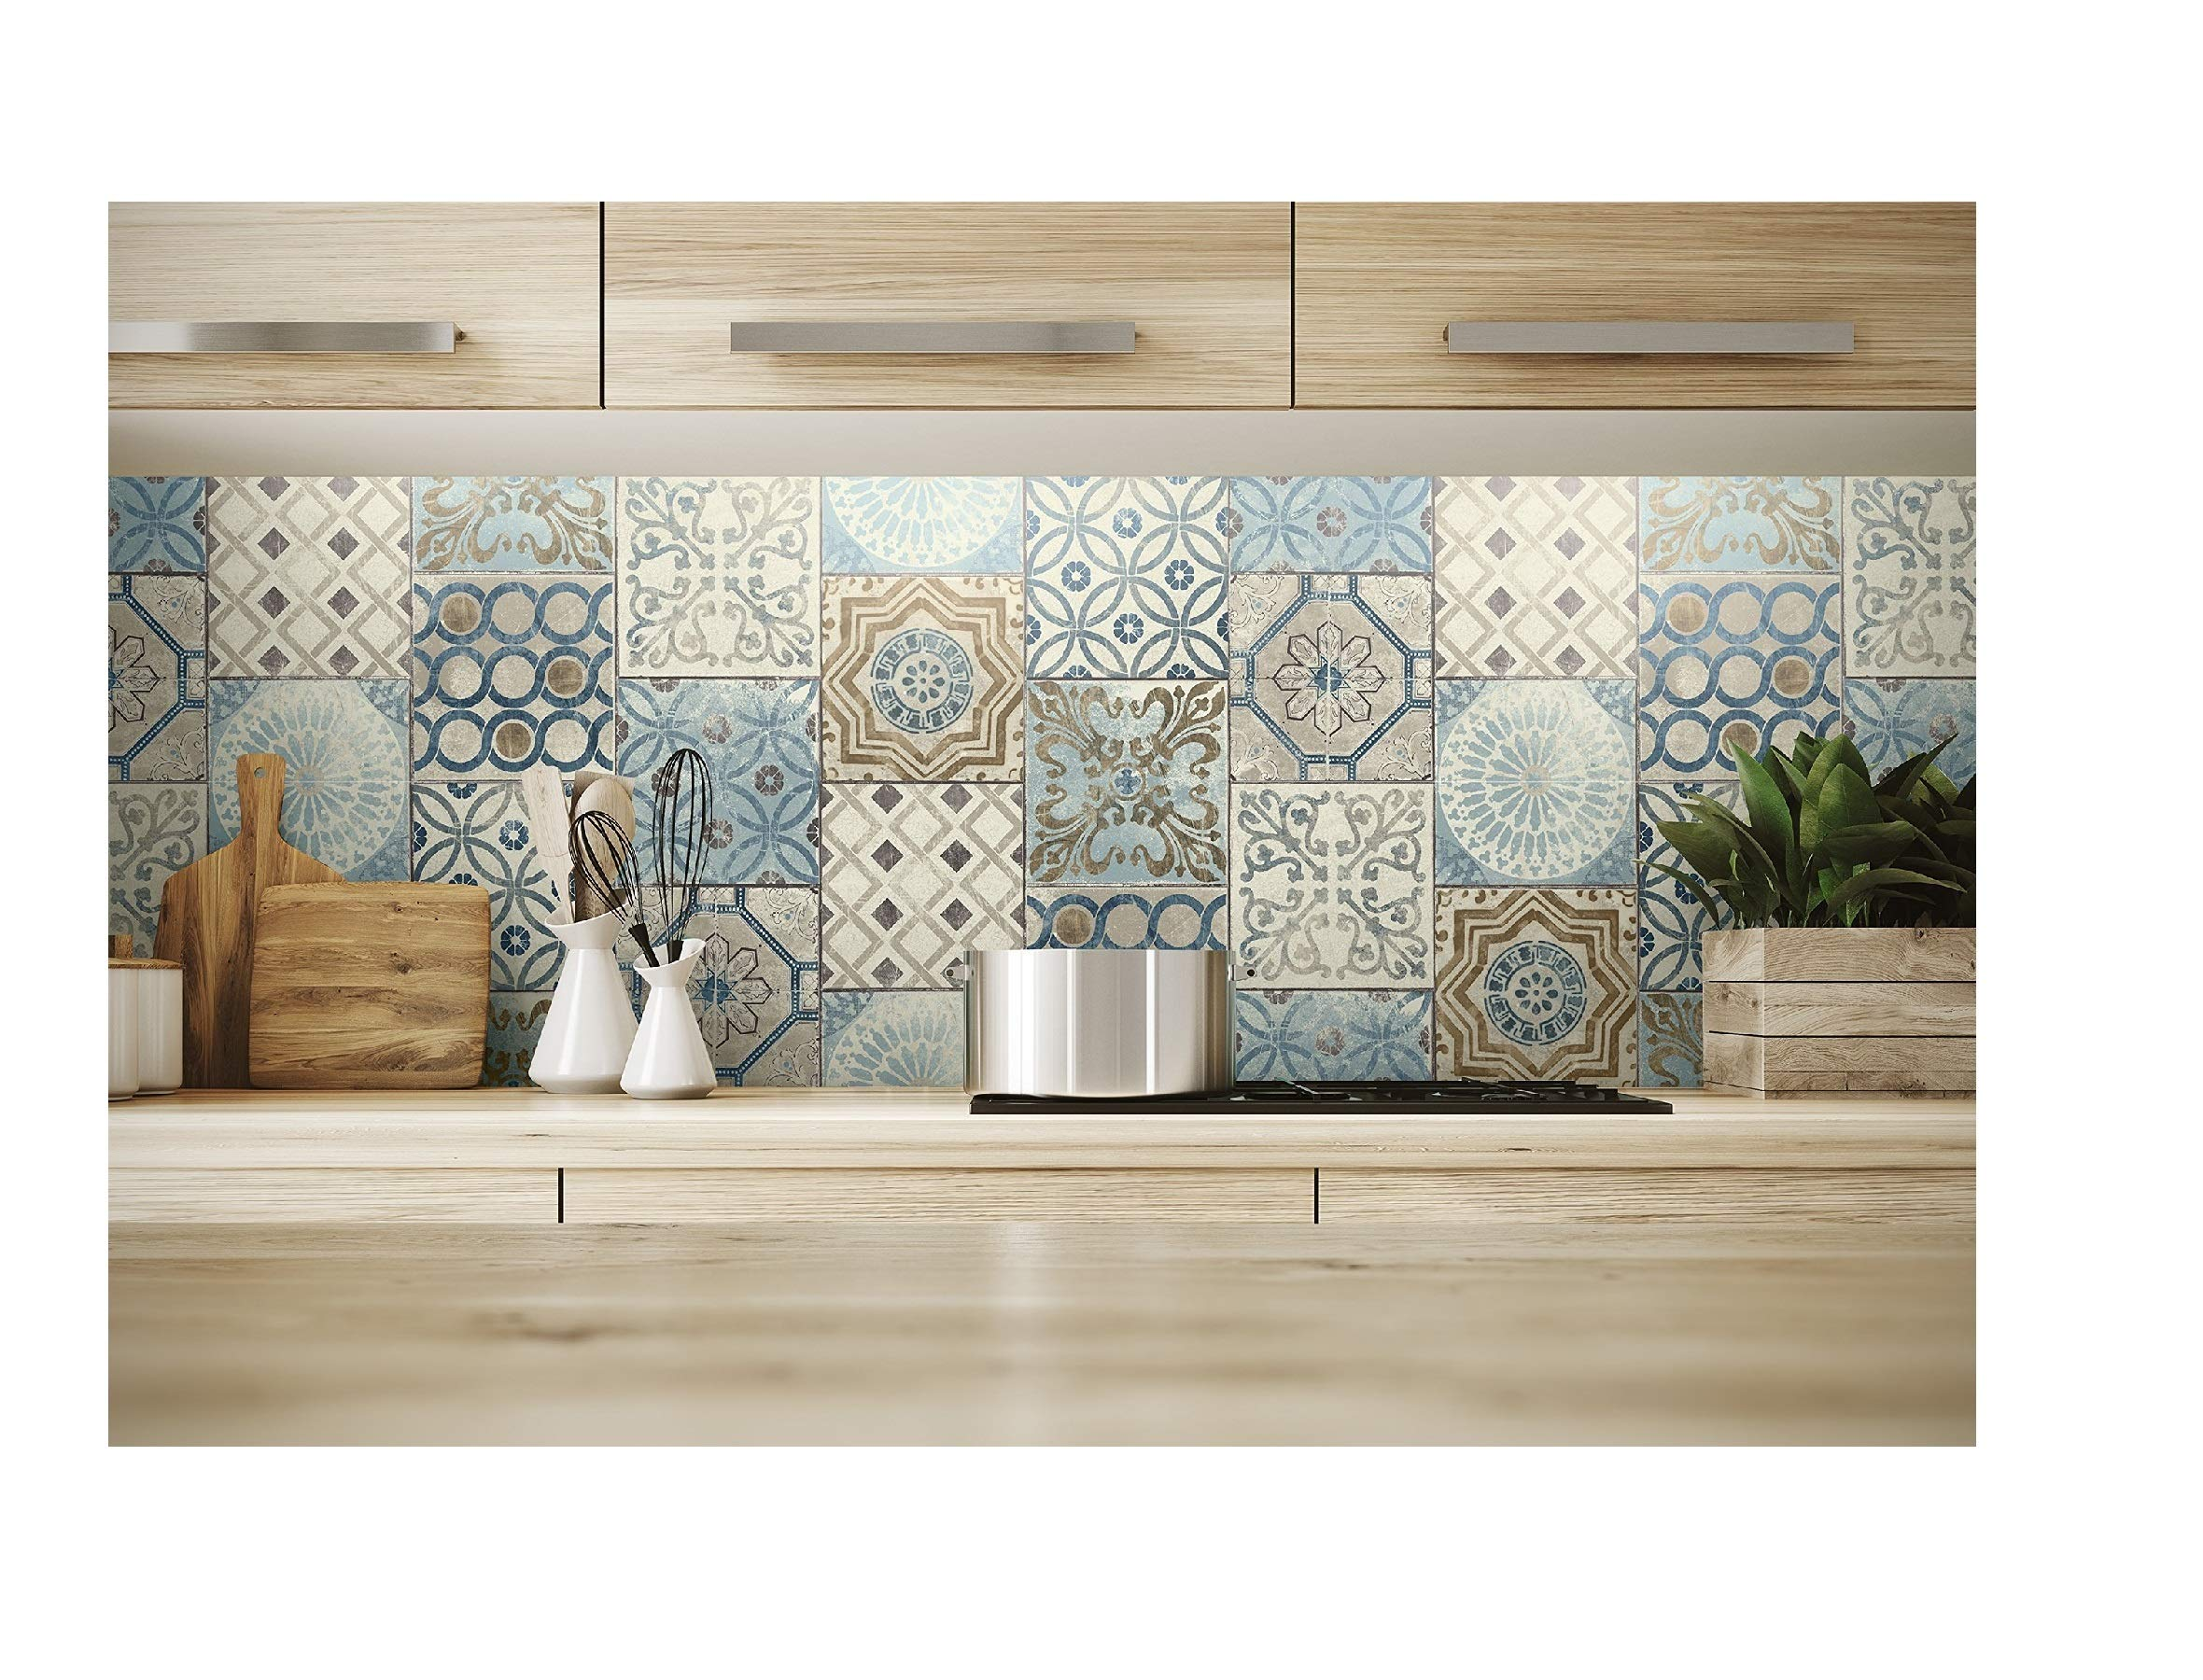 NextWall Moroccan Style Peel and Stick Mosaic Tile Wallpaper. (Blue, Copper & Grey) by NextWall